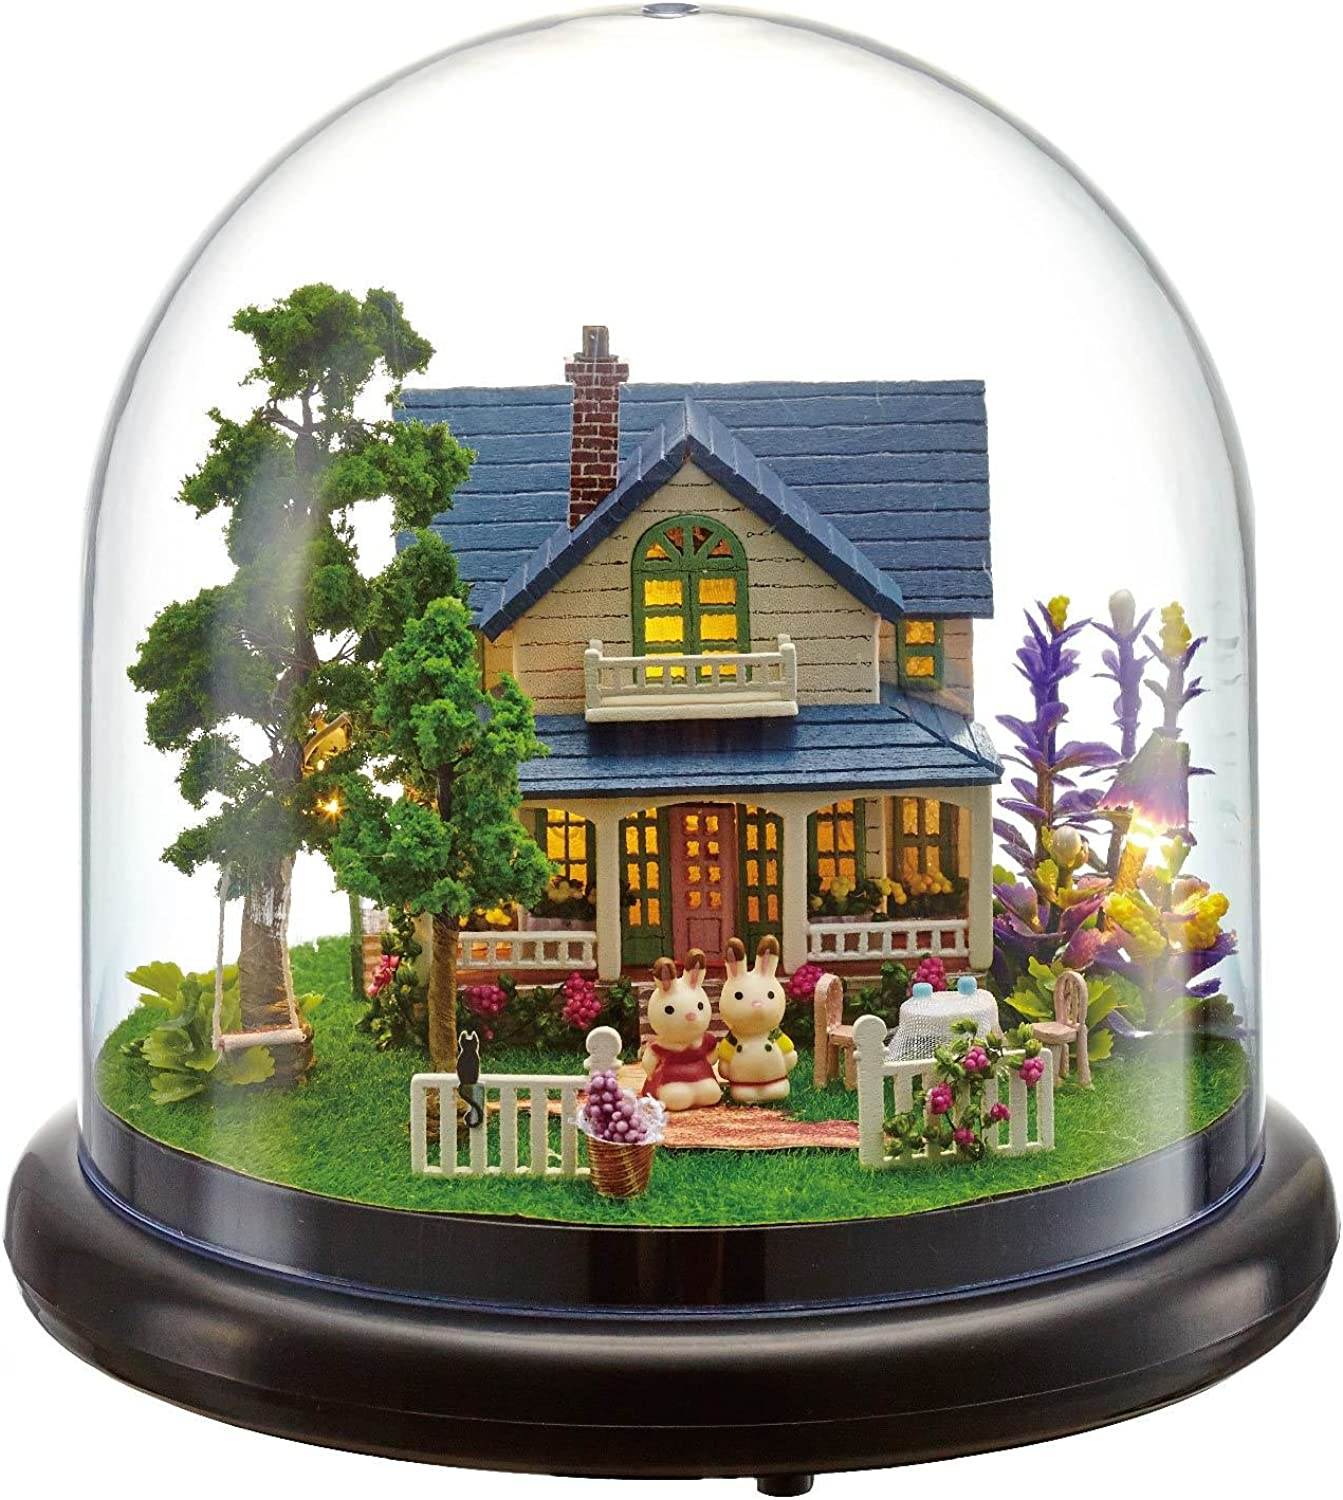 Aiweasi DIY Cottage with Transparent Cover Villa Model Music Box for Girlfriend Meaningful Gift